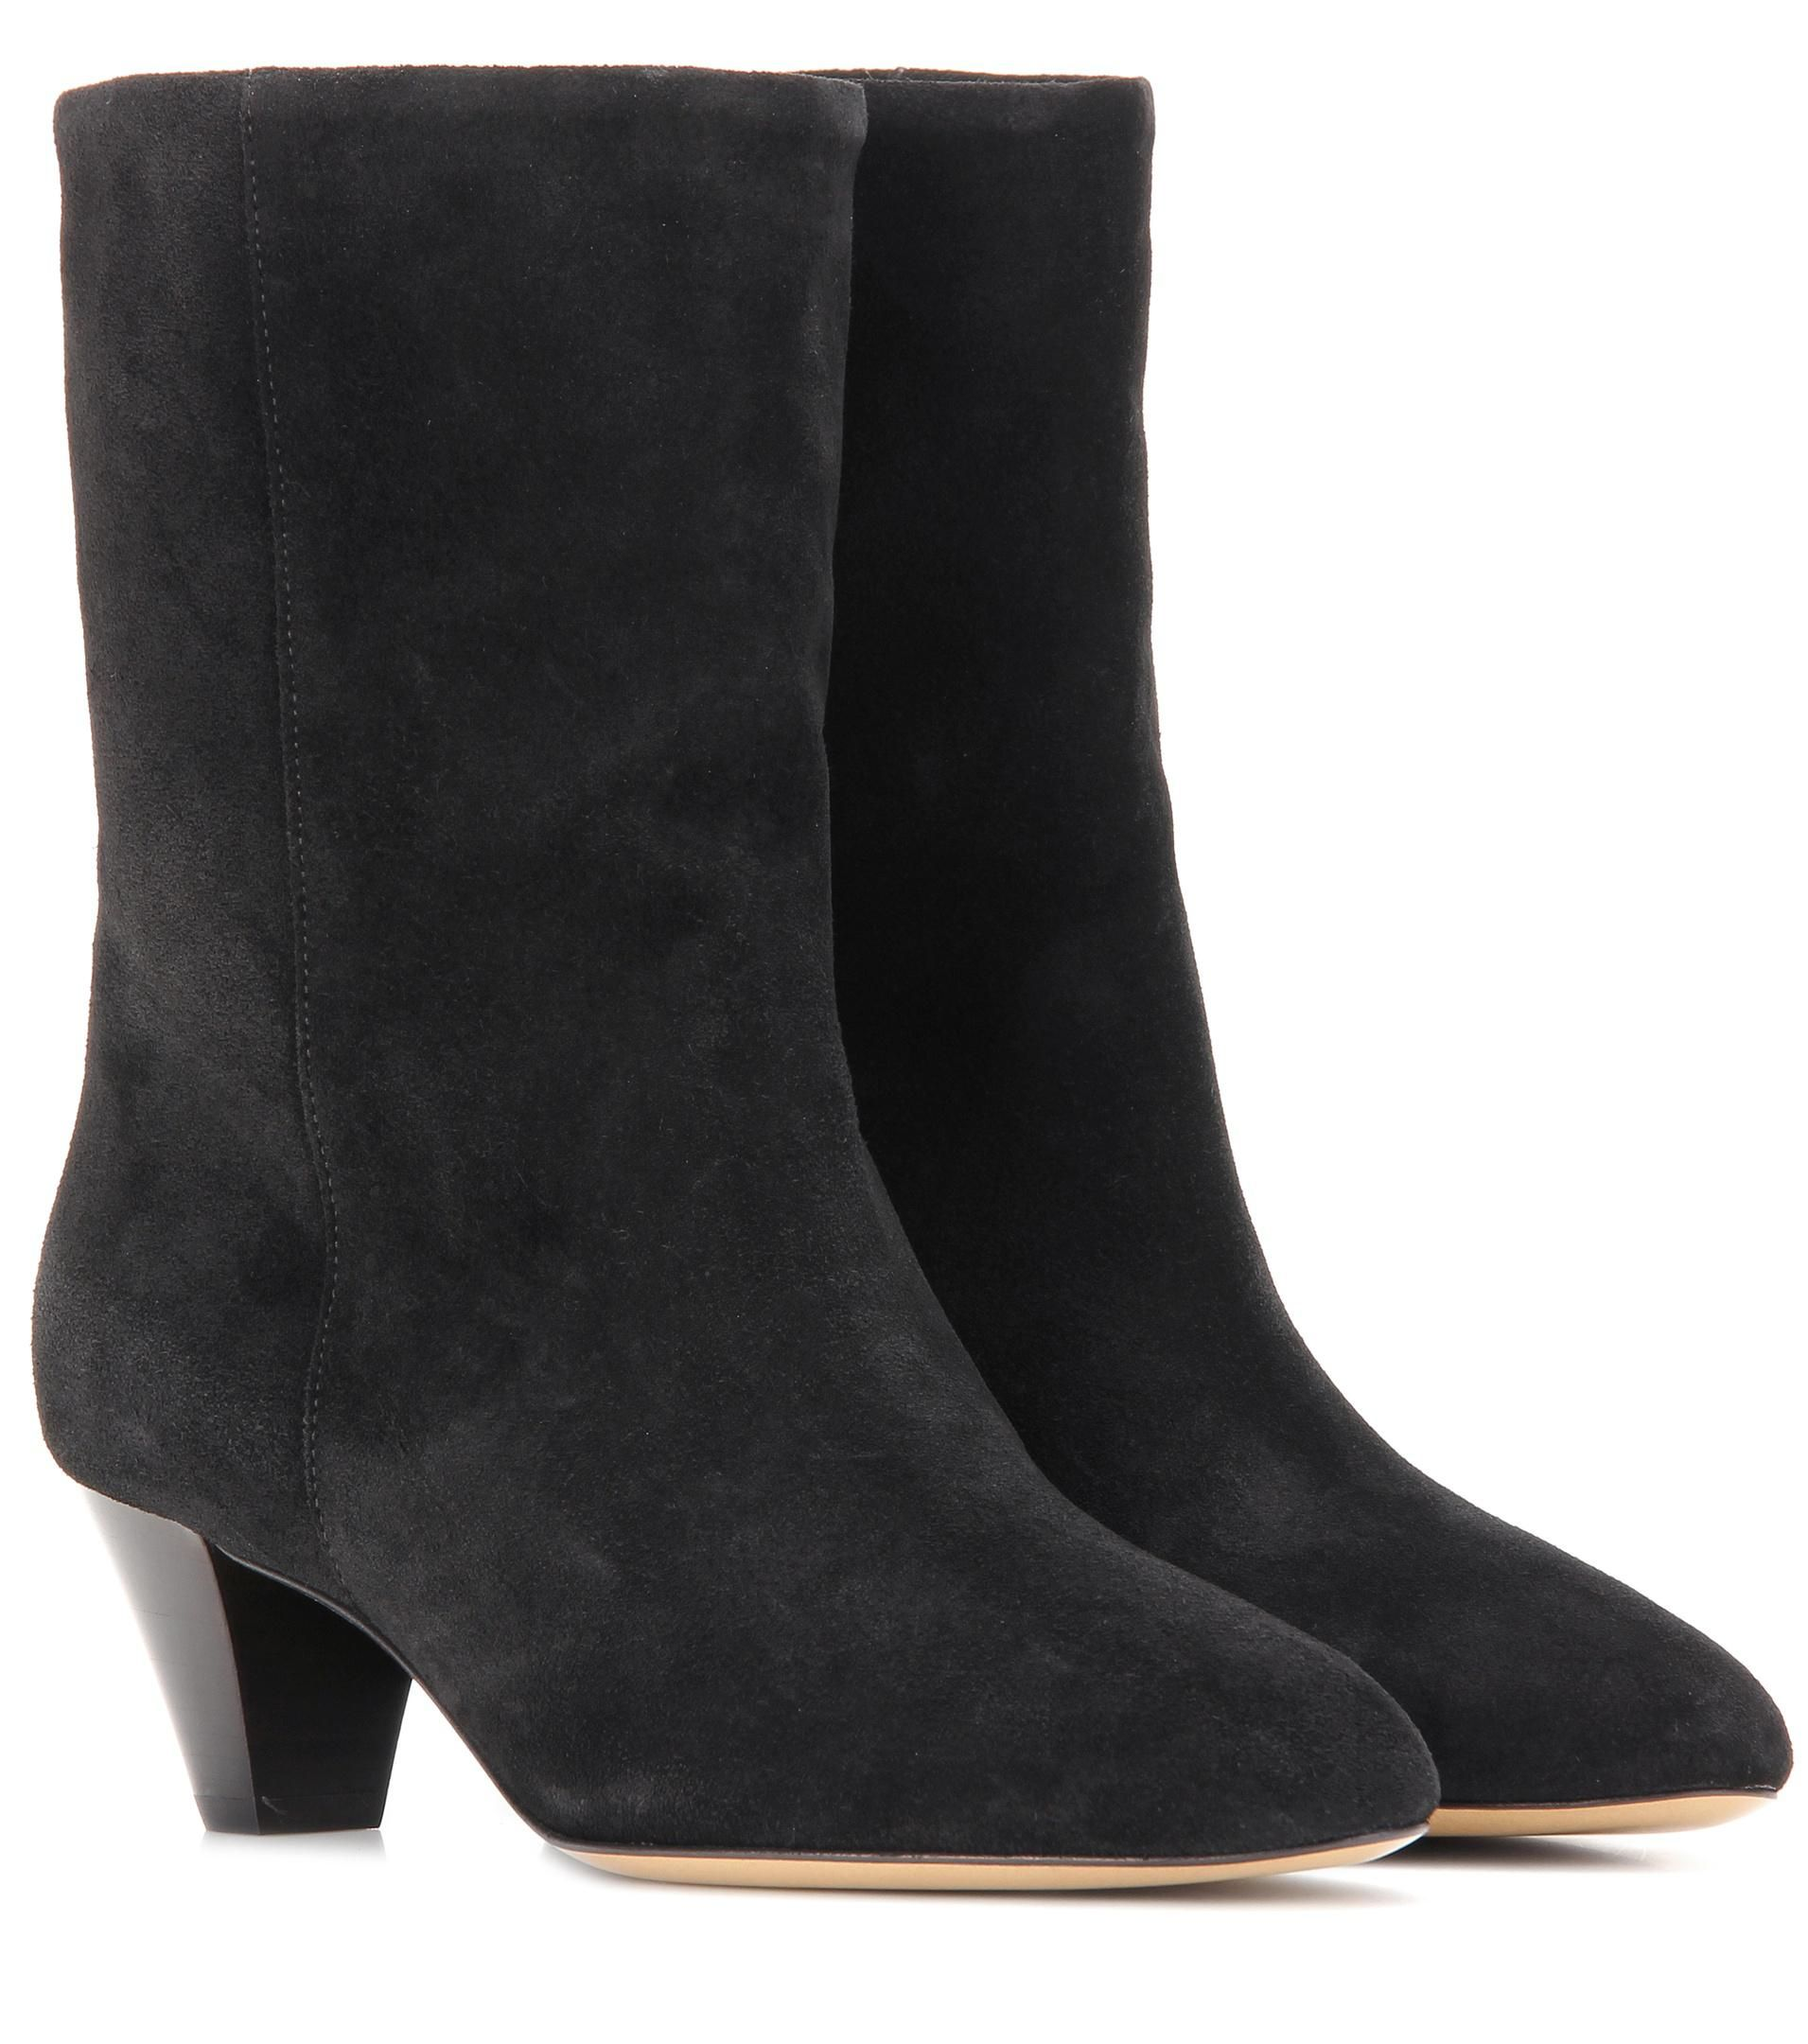 464a72eb236 Women's Black Dyna Suede Boots | mid-calf boots | Boots, Black suede ...